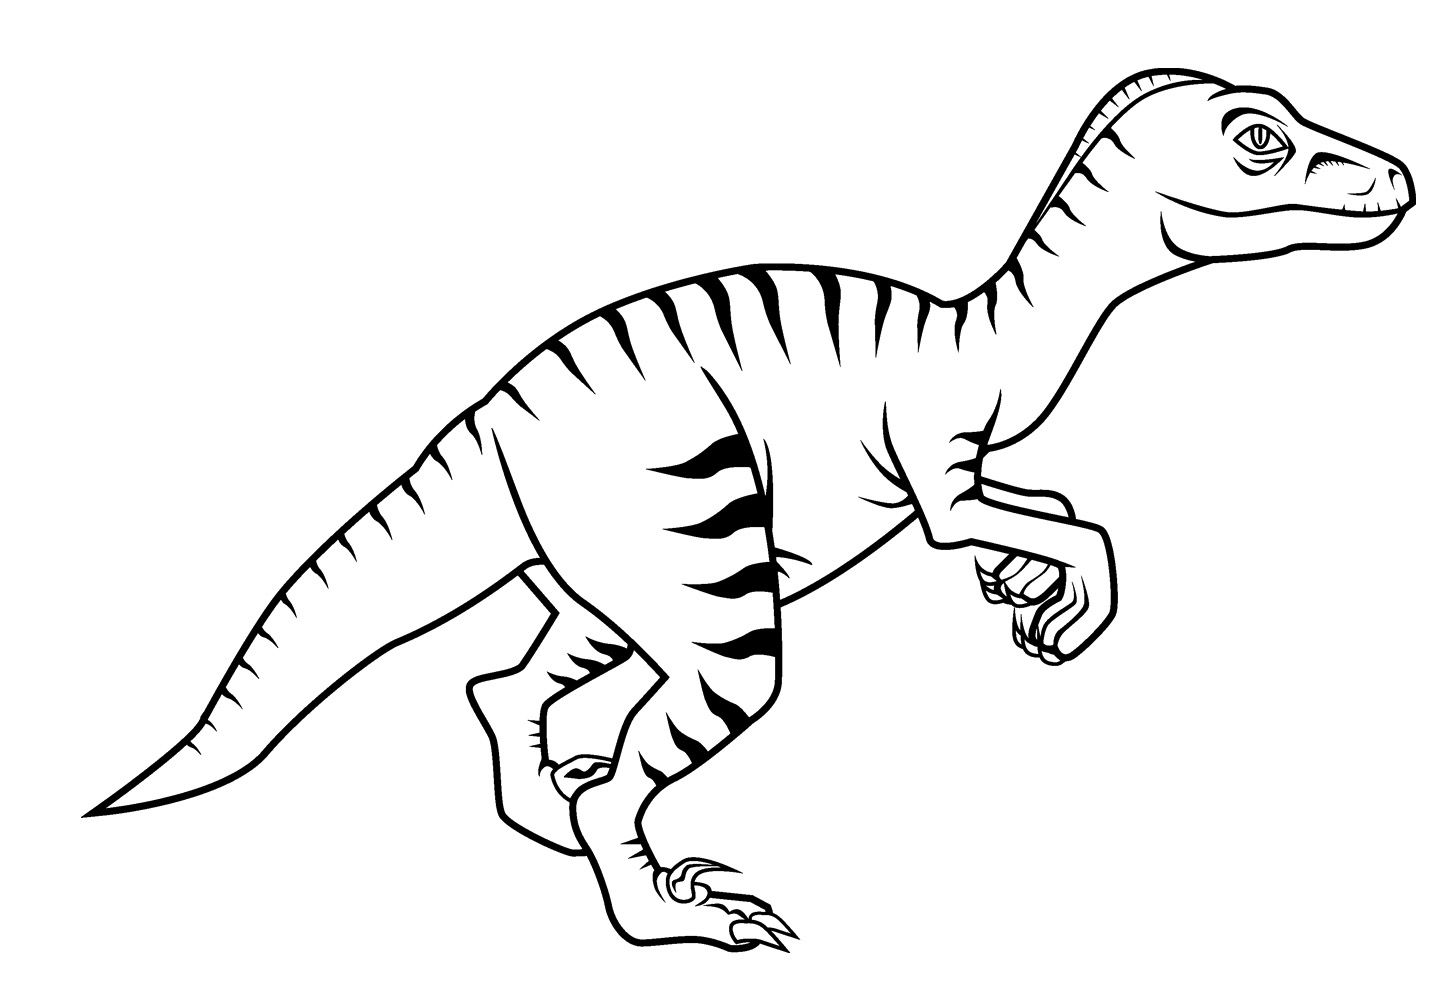 Free New Dinosaur Velociraptor Coloring Pages For Kids.